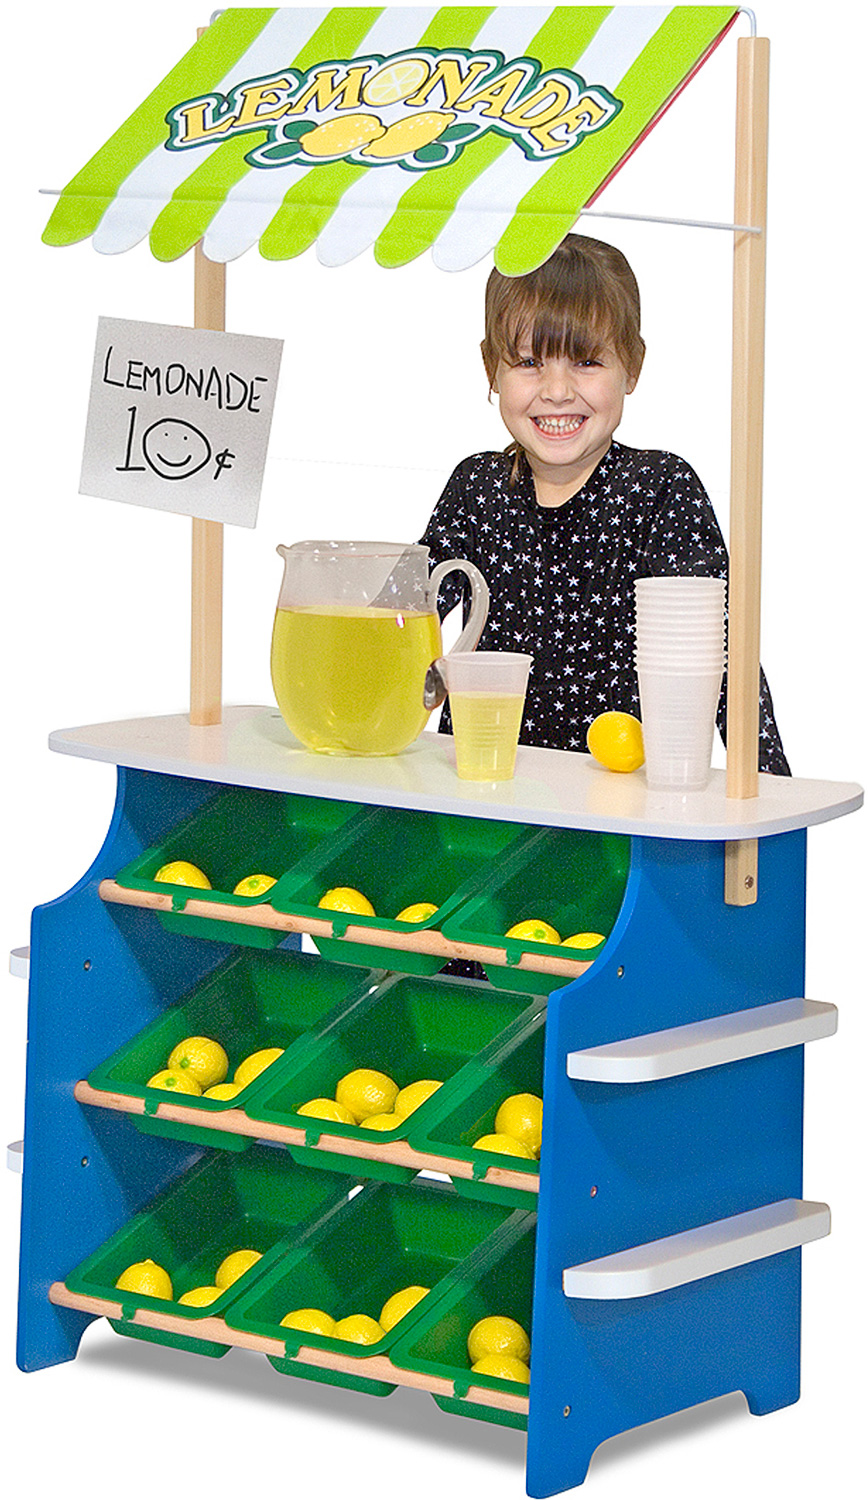 Small Lemonade Stand From Home In Canada